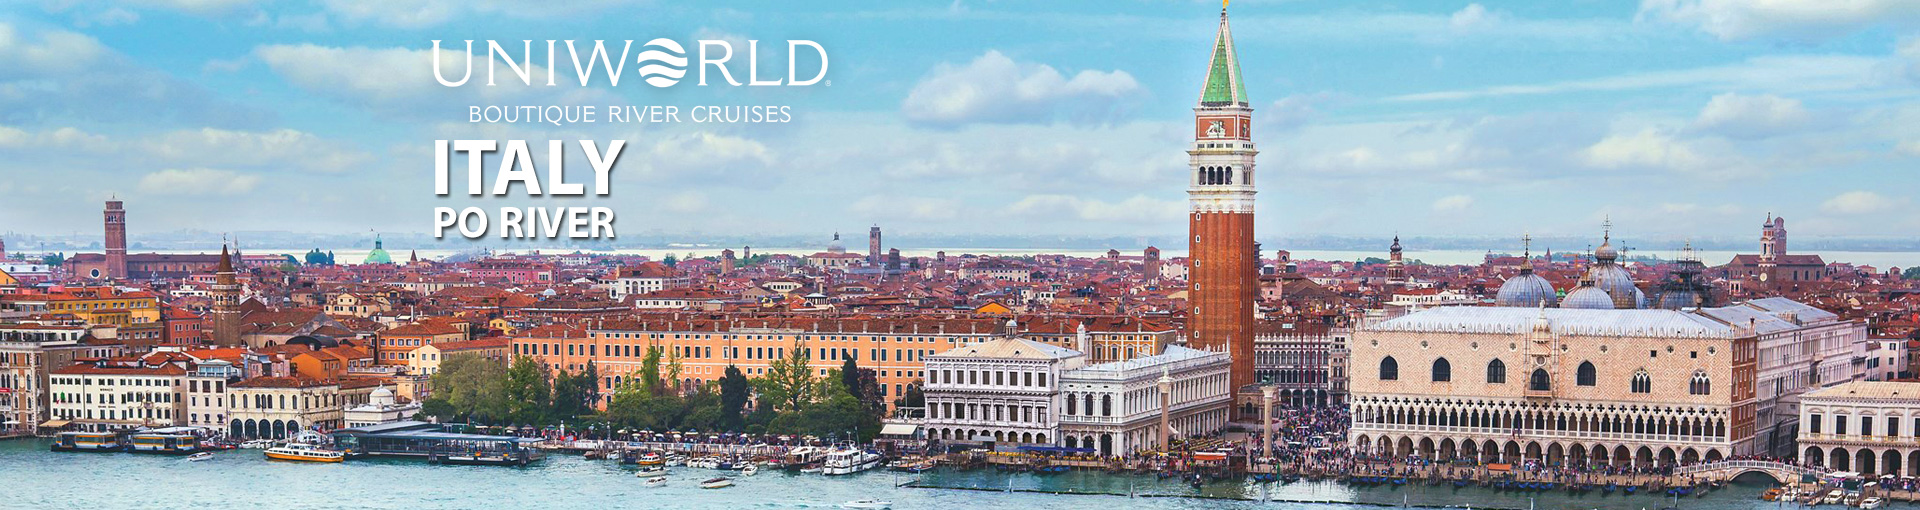 Uniworld River Cruises along Italy's Po River